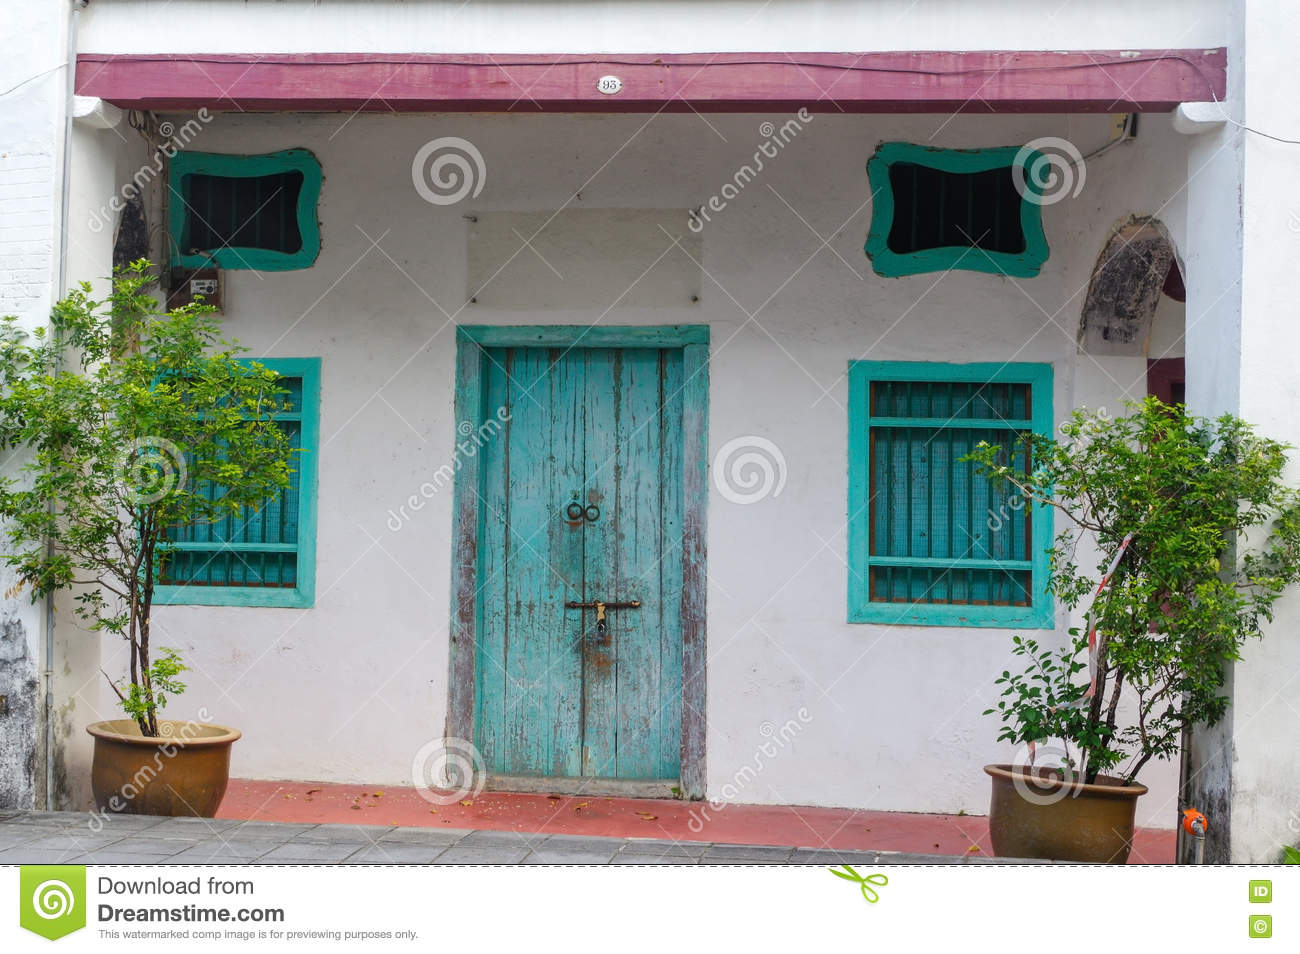 House in George Town, Penang, Malaysia. Mediterranean style exterior. Blue wooden doors and window shutters on old painted wall